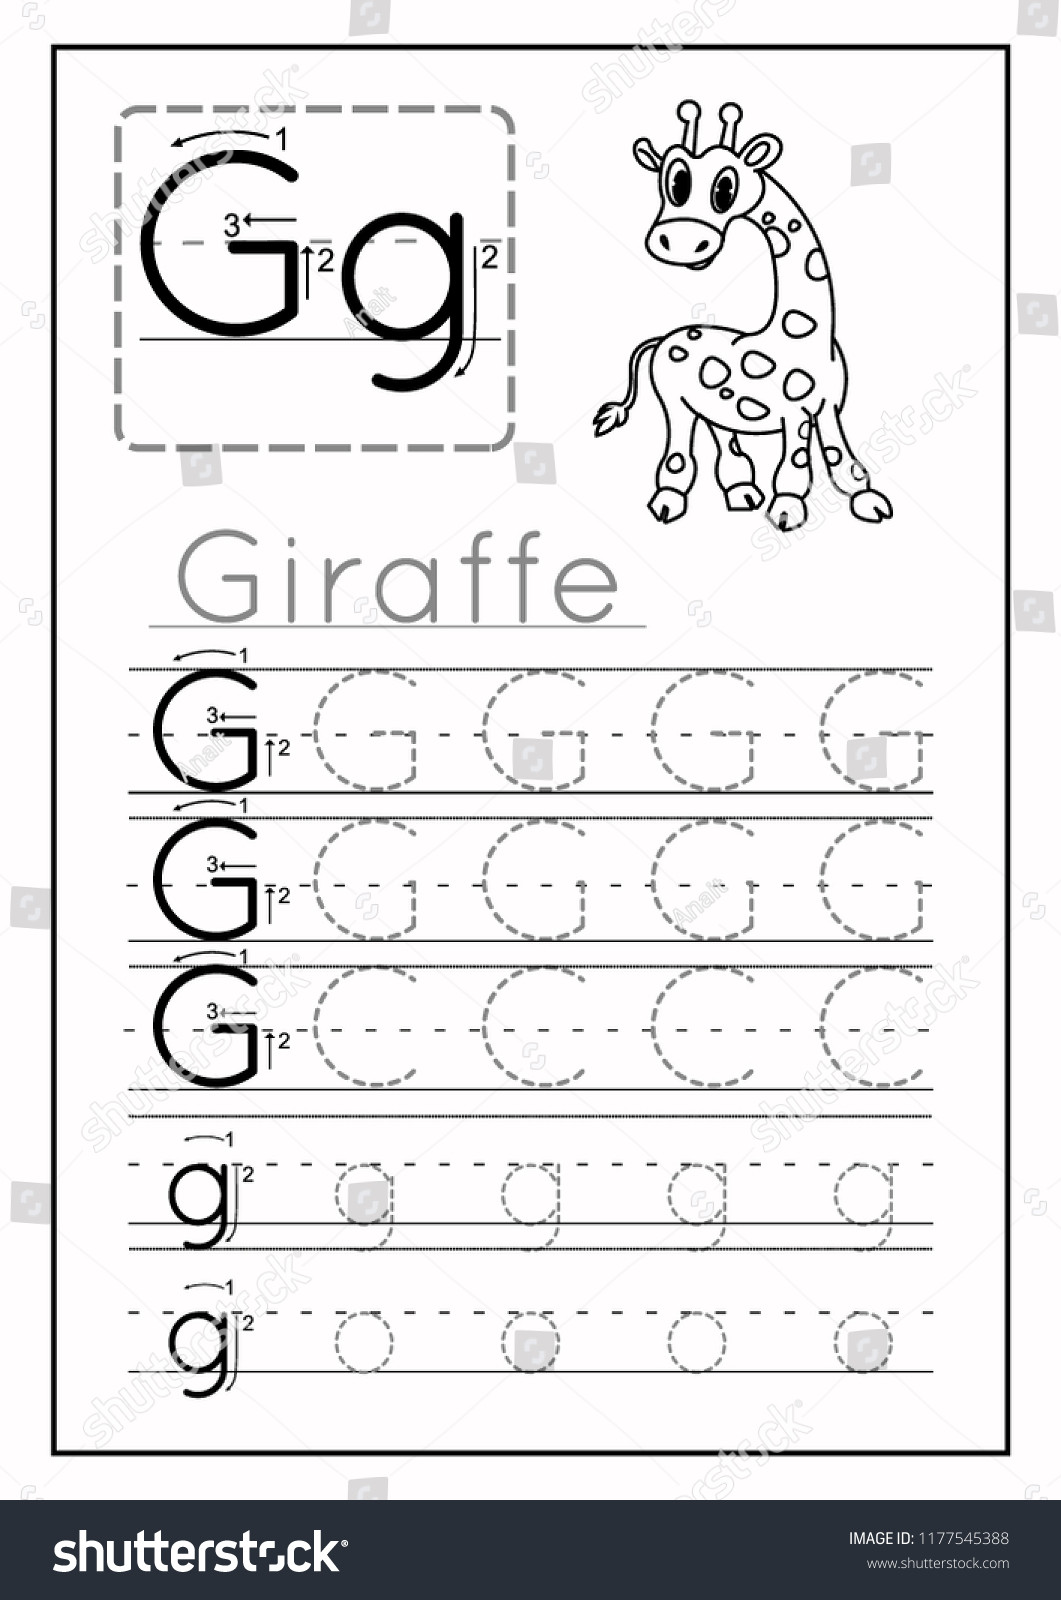 G Worksheets for Preschool Worksheet Holiday Printouts Pre Rhyming Words Addition